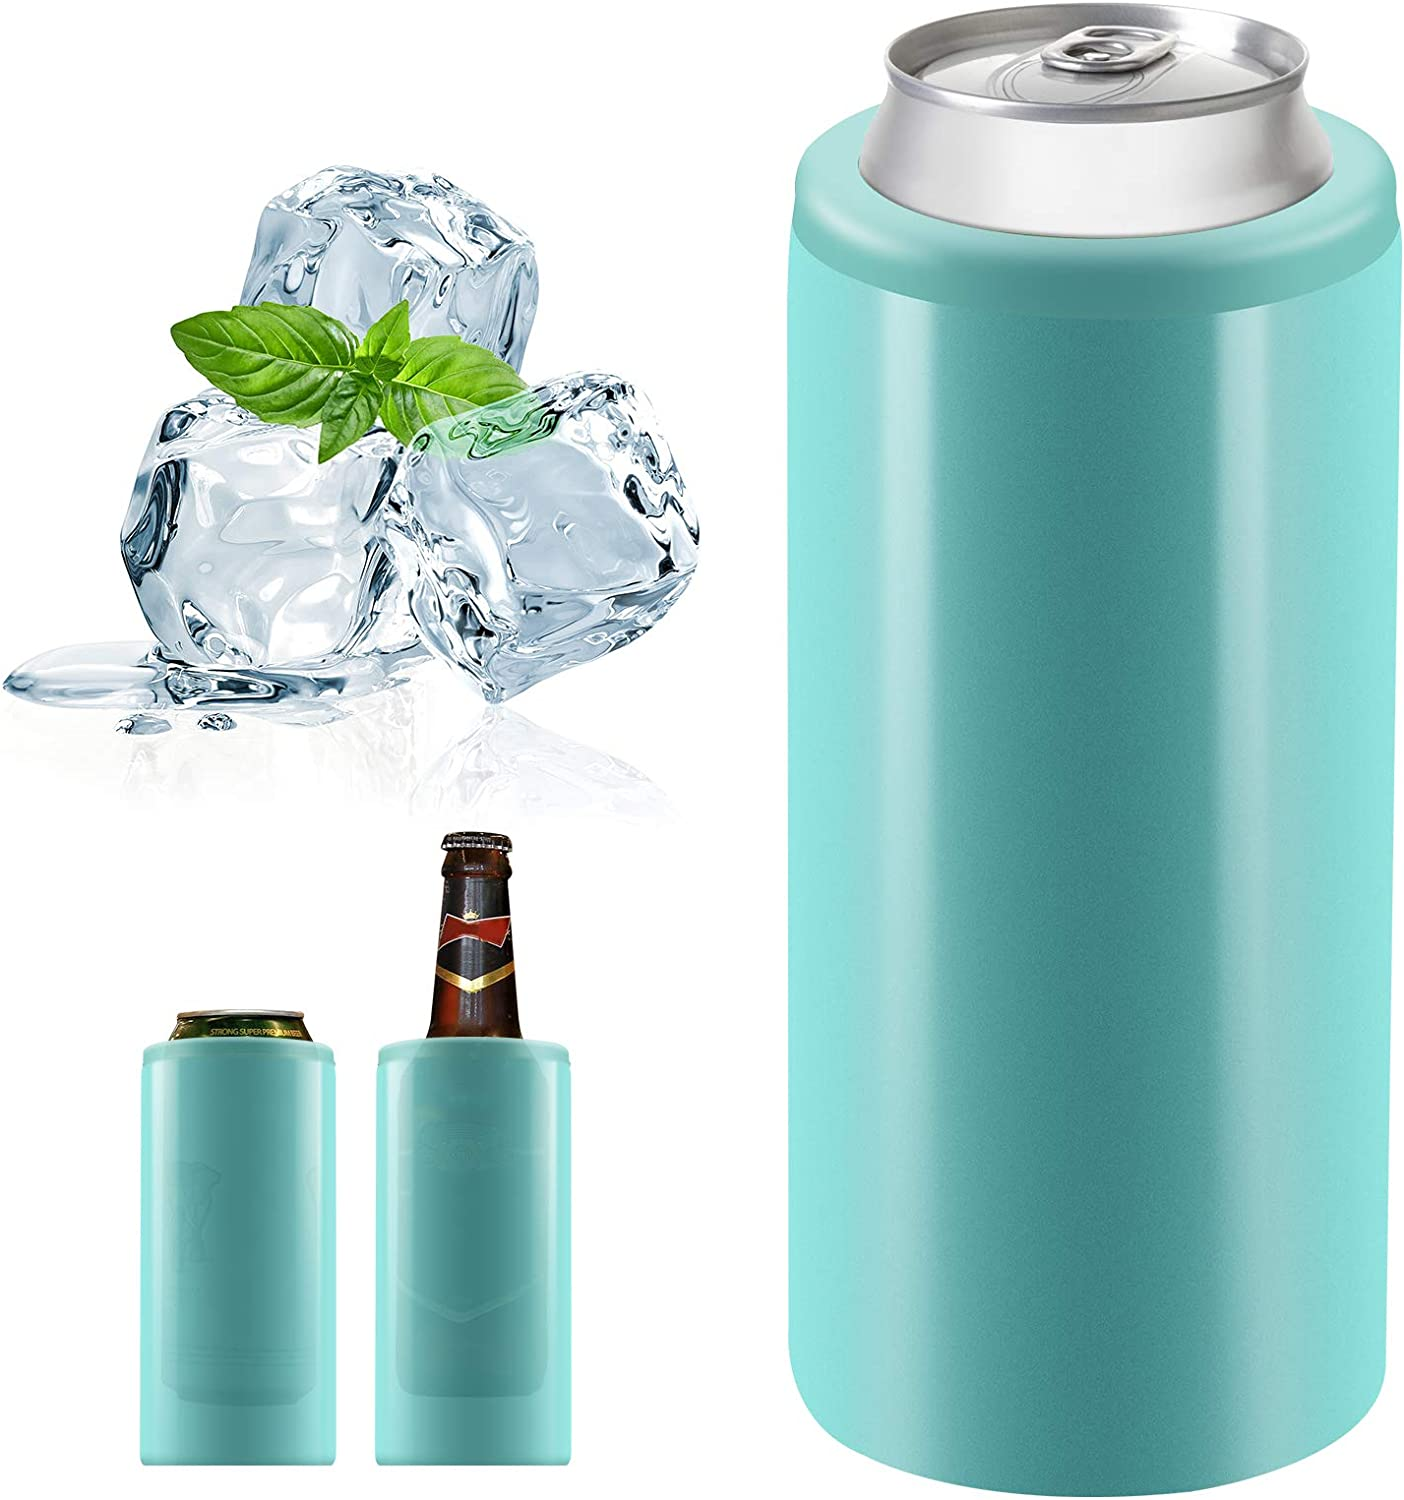 Domccy 12oz Skinny Can Cooler, Triple Insulated Stainless Steel Slim Can Cooler, Double-Walled Vacuum Slim Can Coozie for Slim Beer, Soda, Beverages and Tall Skinny Can (Light Green)